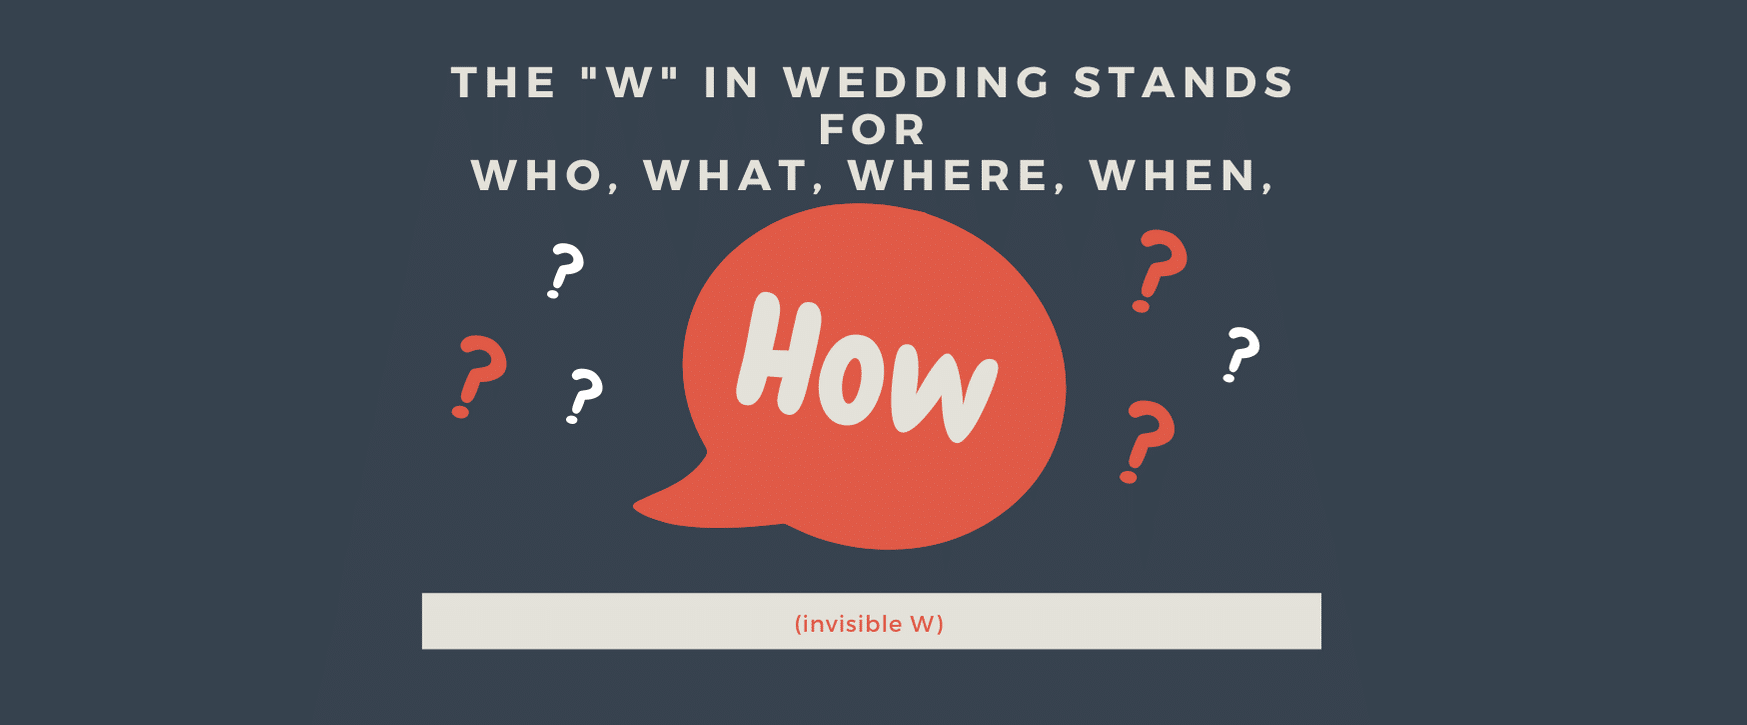 wedding questions engaged bride to be